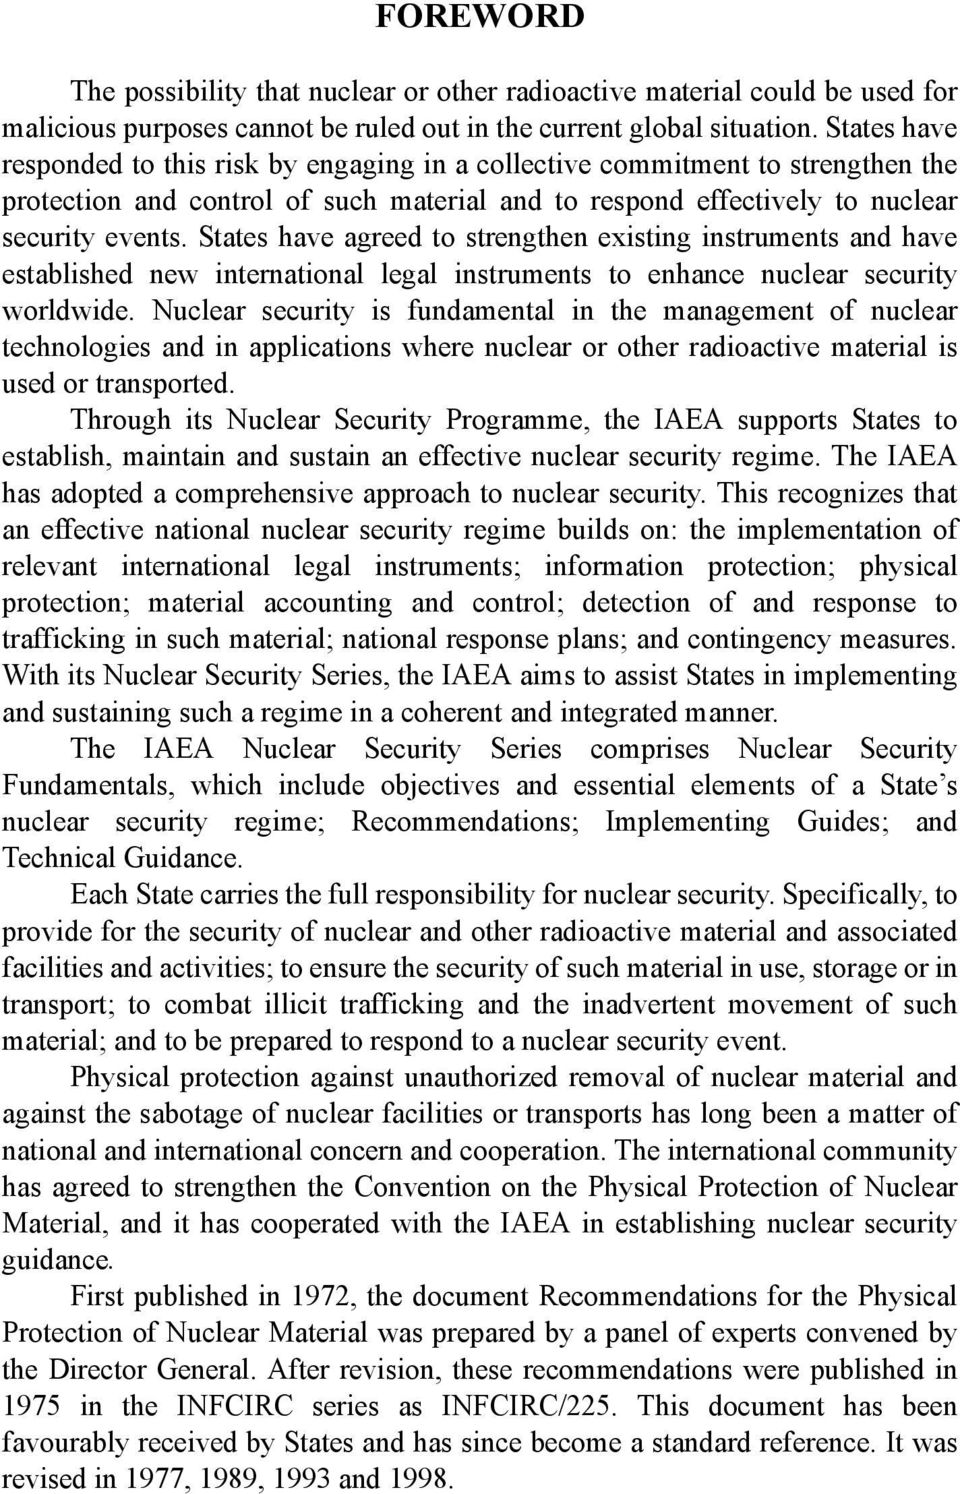 States have agreed to strengthen existing instruments and have established new international legal instruments to enhance nuclear security worldwide.